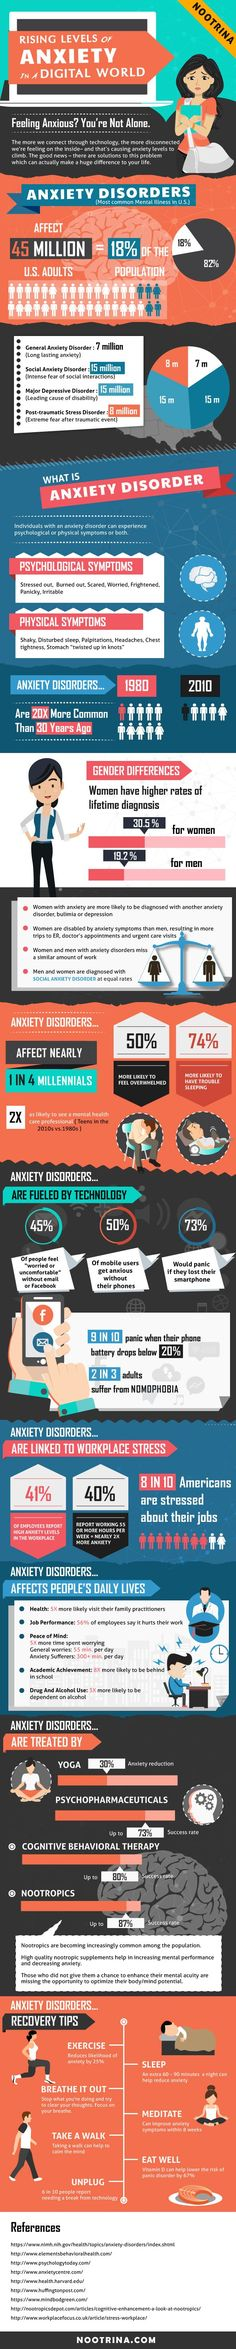 Rising Levels of Anxiety In A Digital World